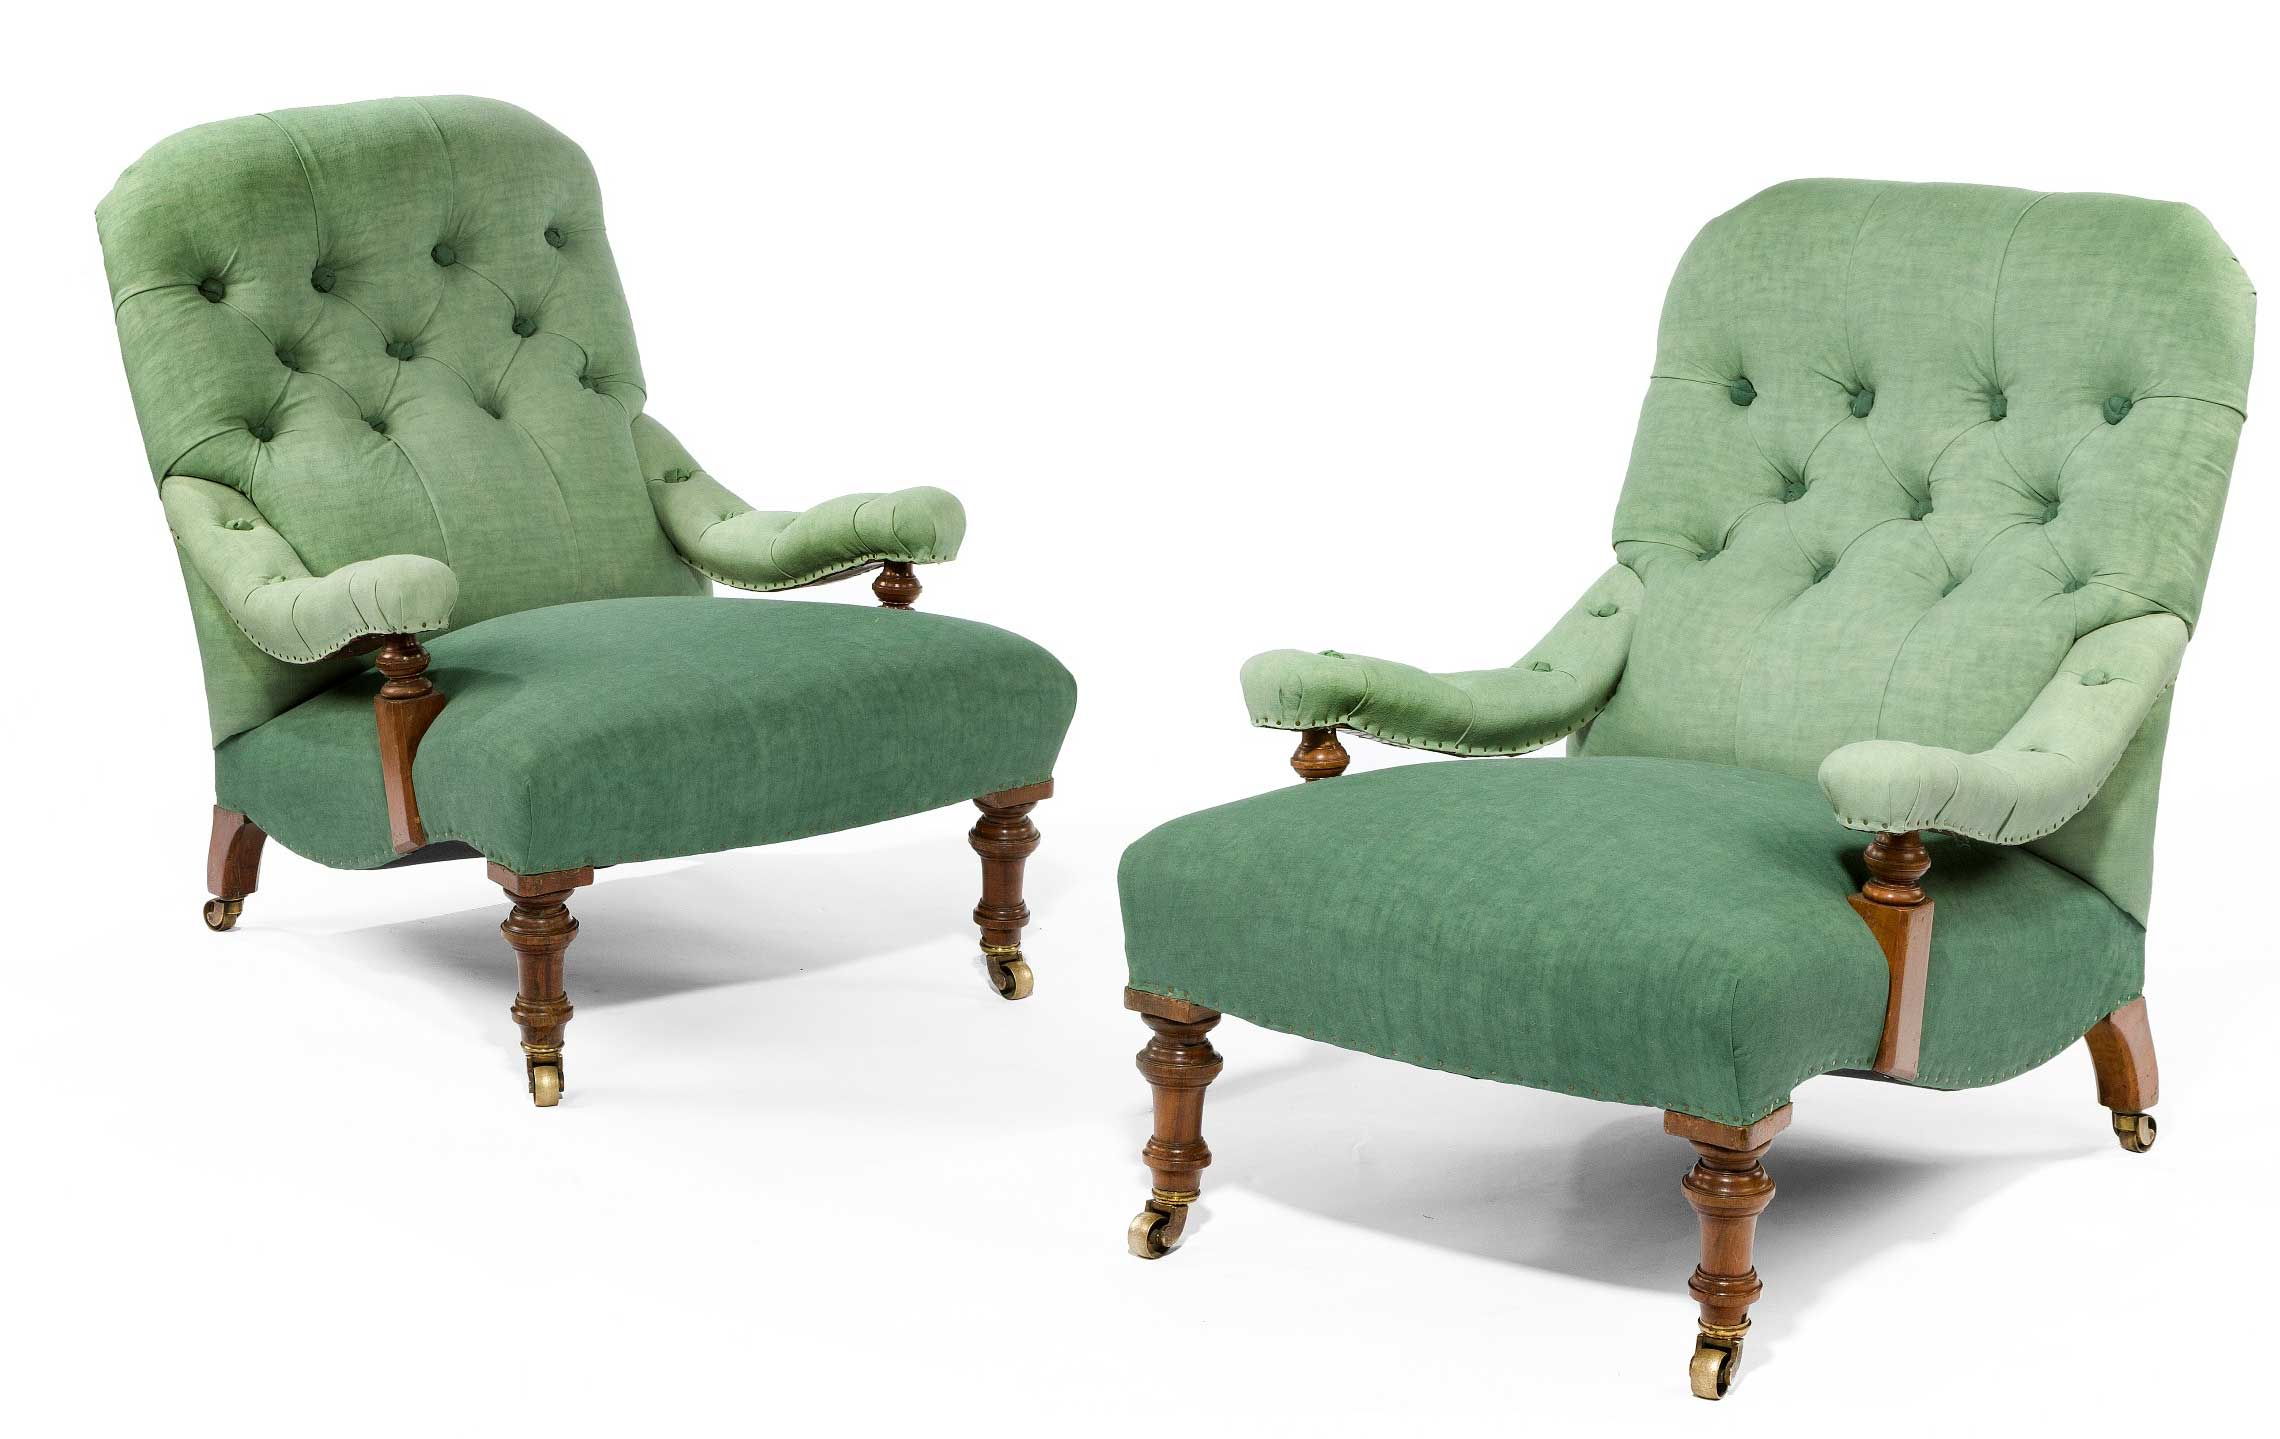 Pair of 19th century walnut armchairs upholstered in linen, £2,650, from Seventeen-Twenty-One